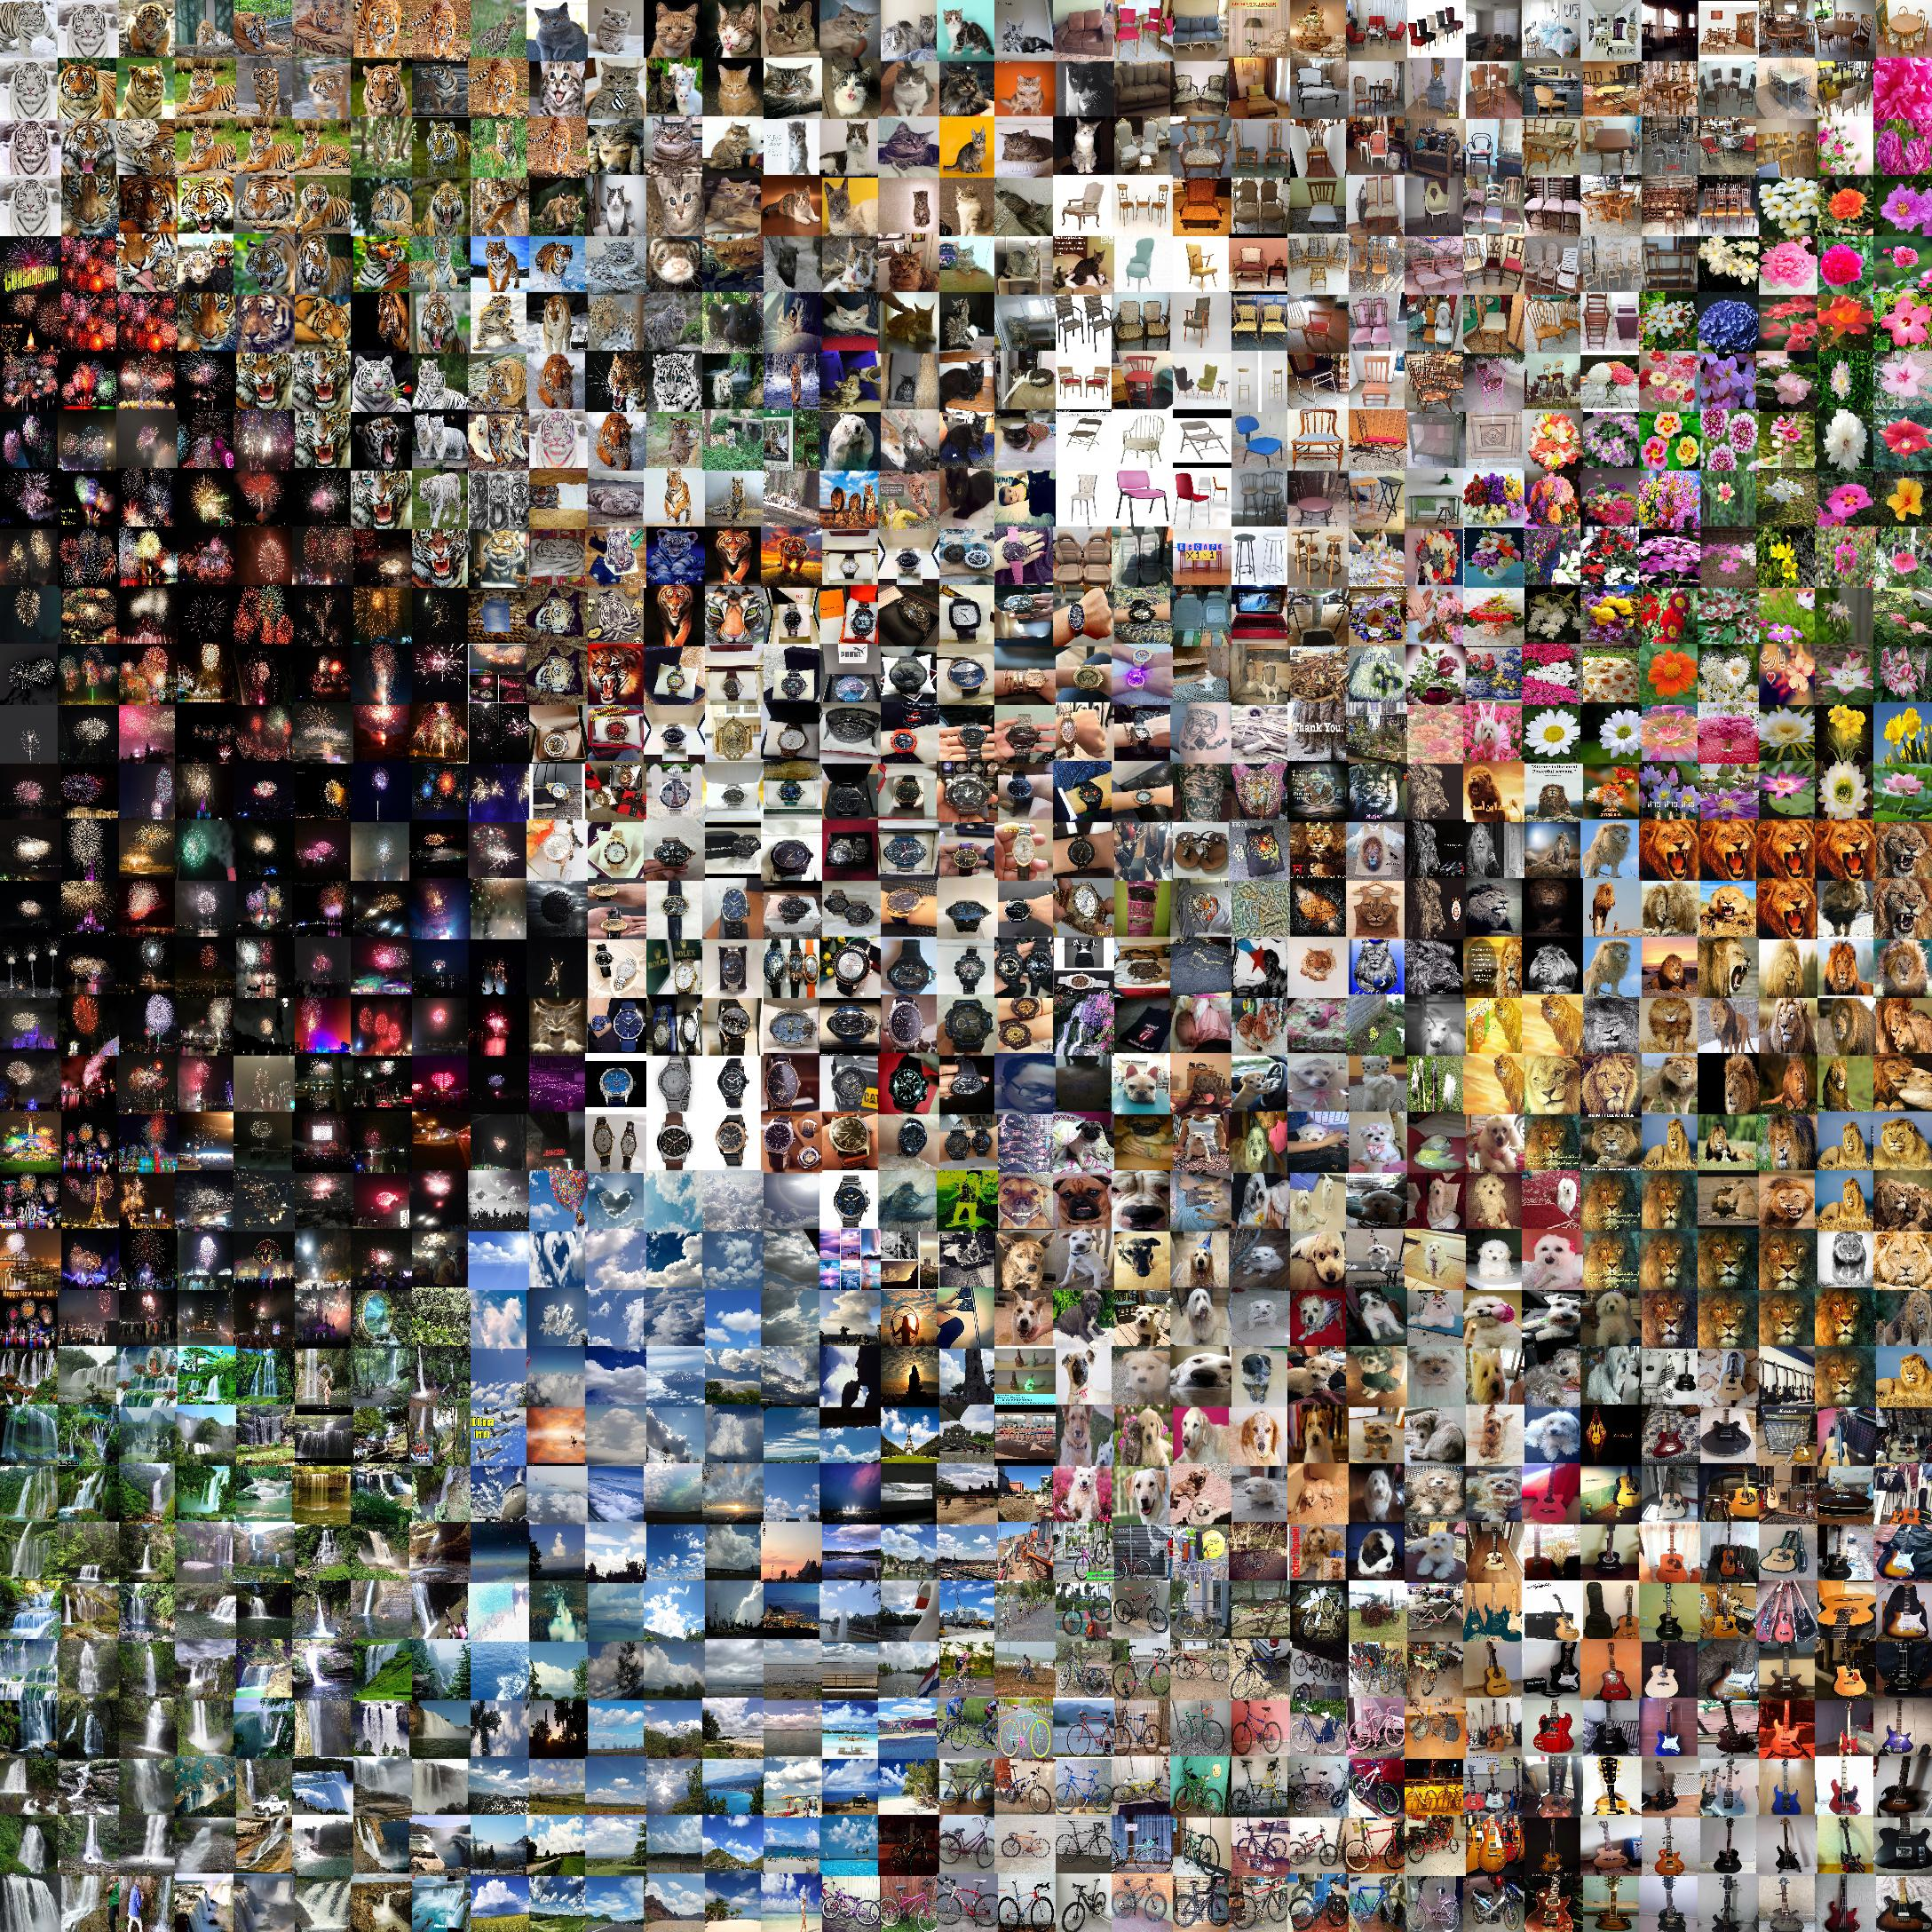 One Thousand Captcha Photos Organizes With A Neural Network